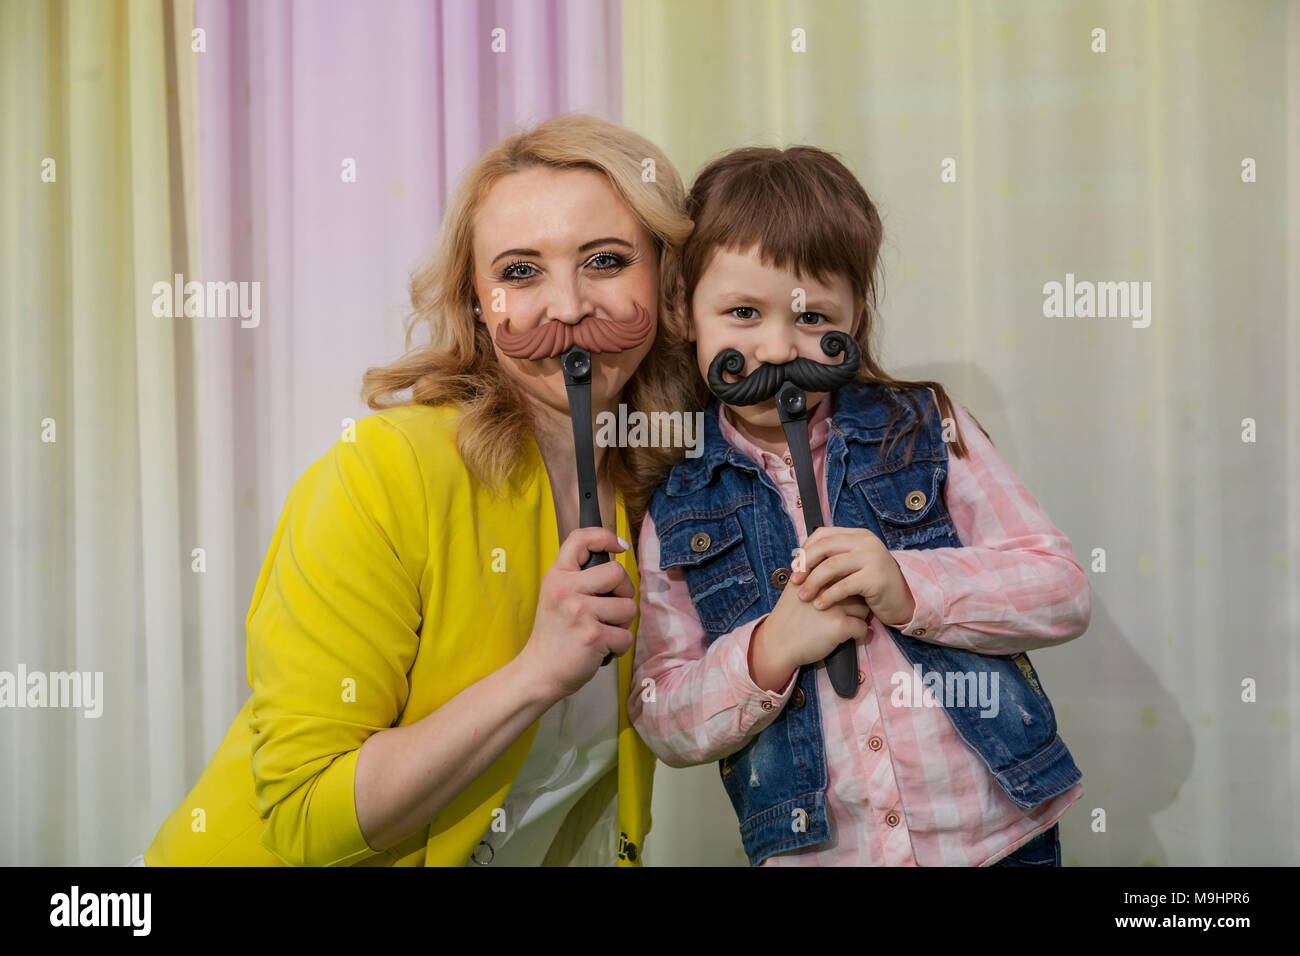 Woman with toy mustache - Stock Image